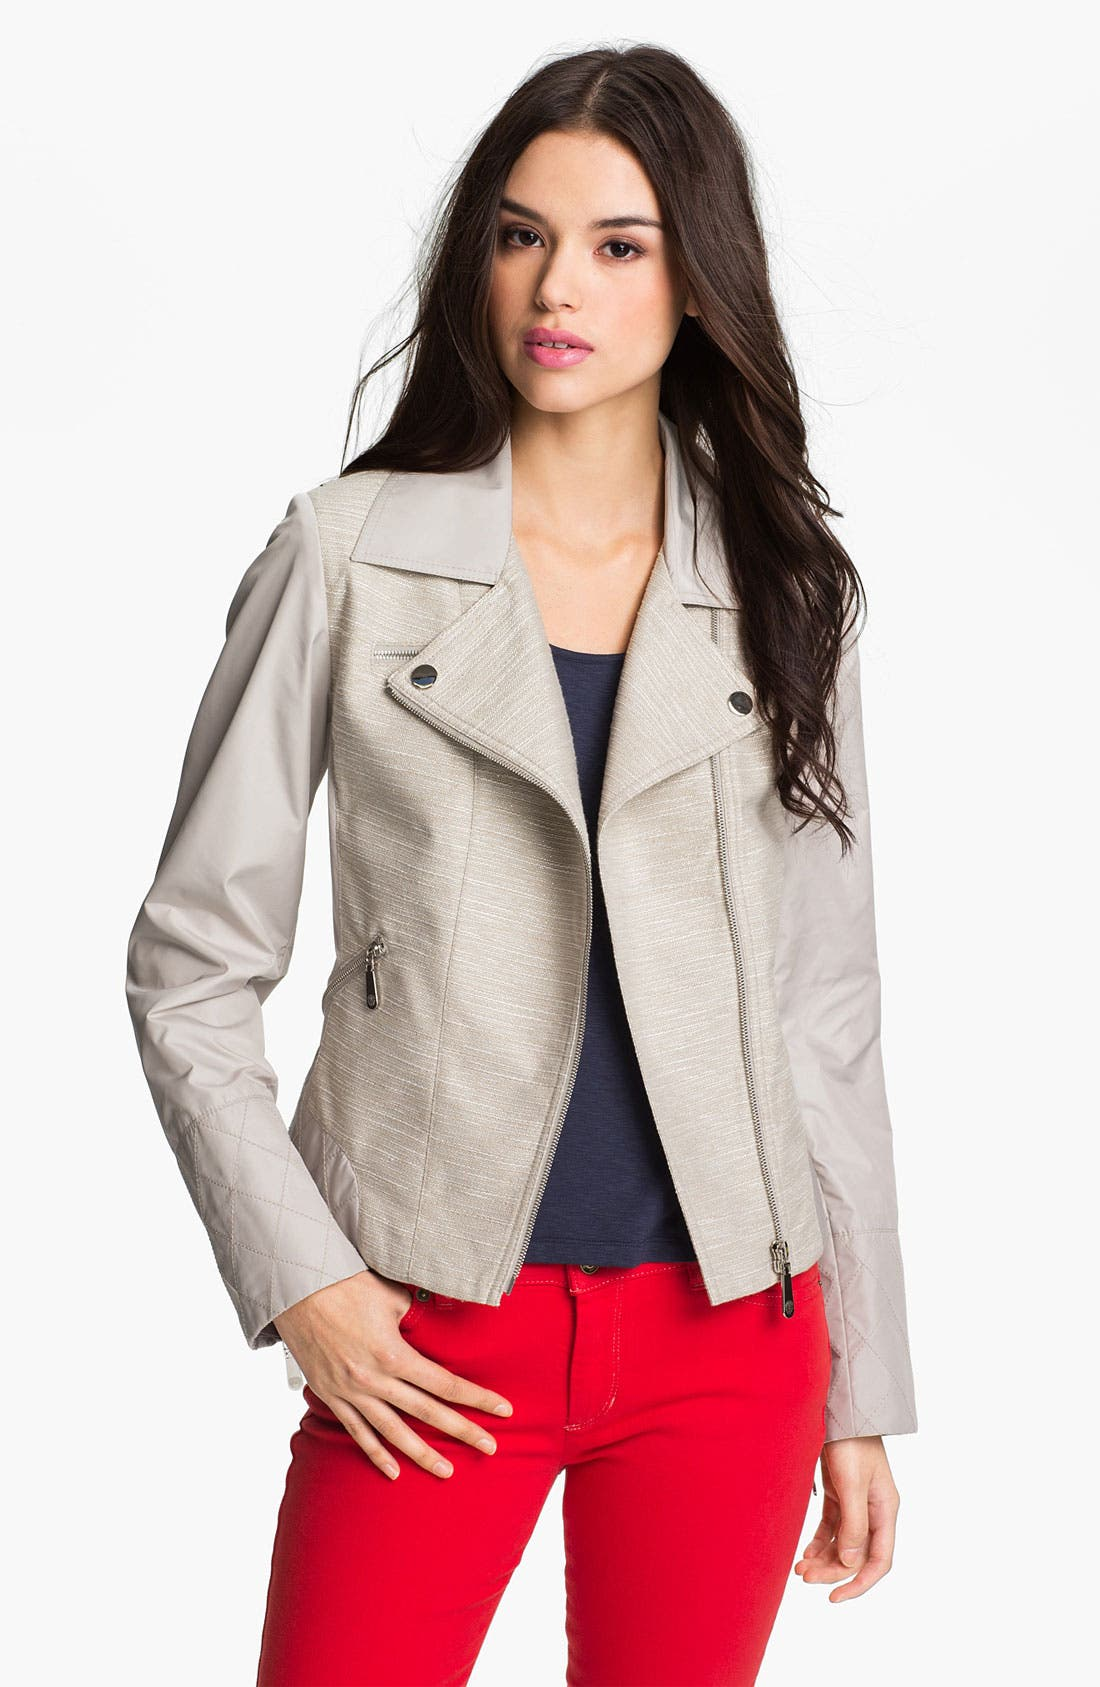 Main Image - Vince Camuto 'Khloe' Jacket (Online Only)